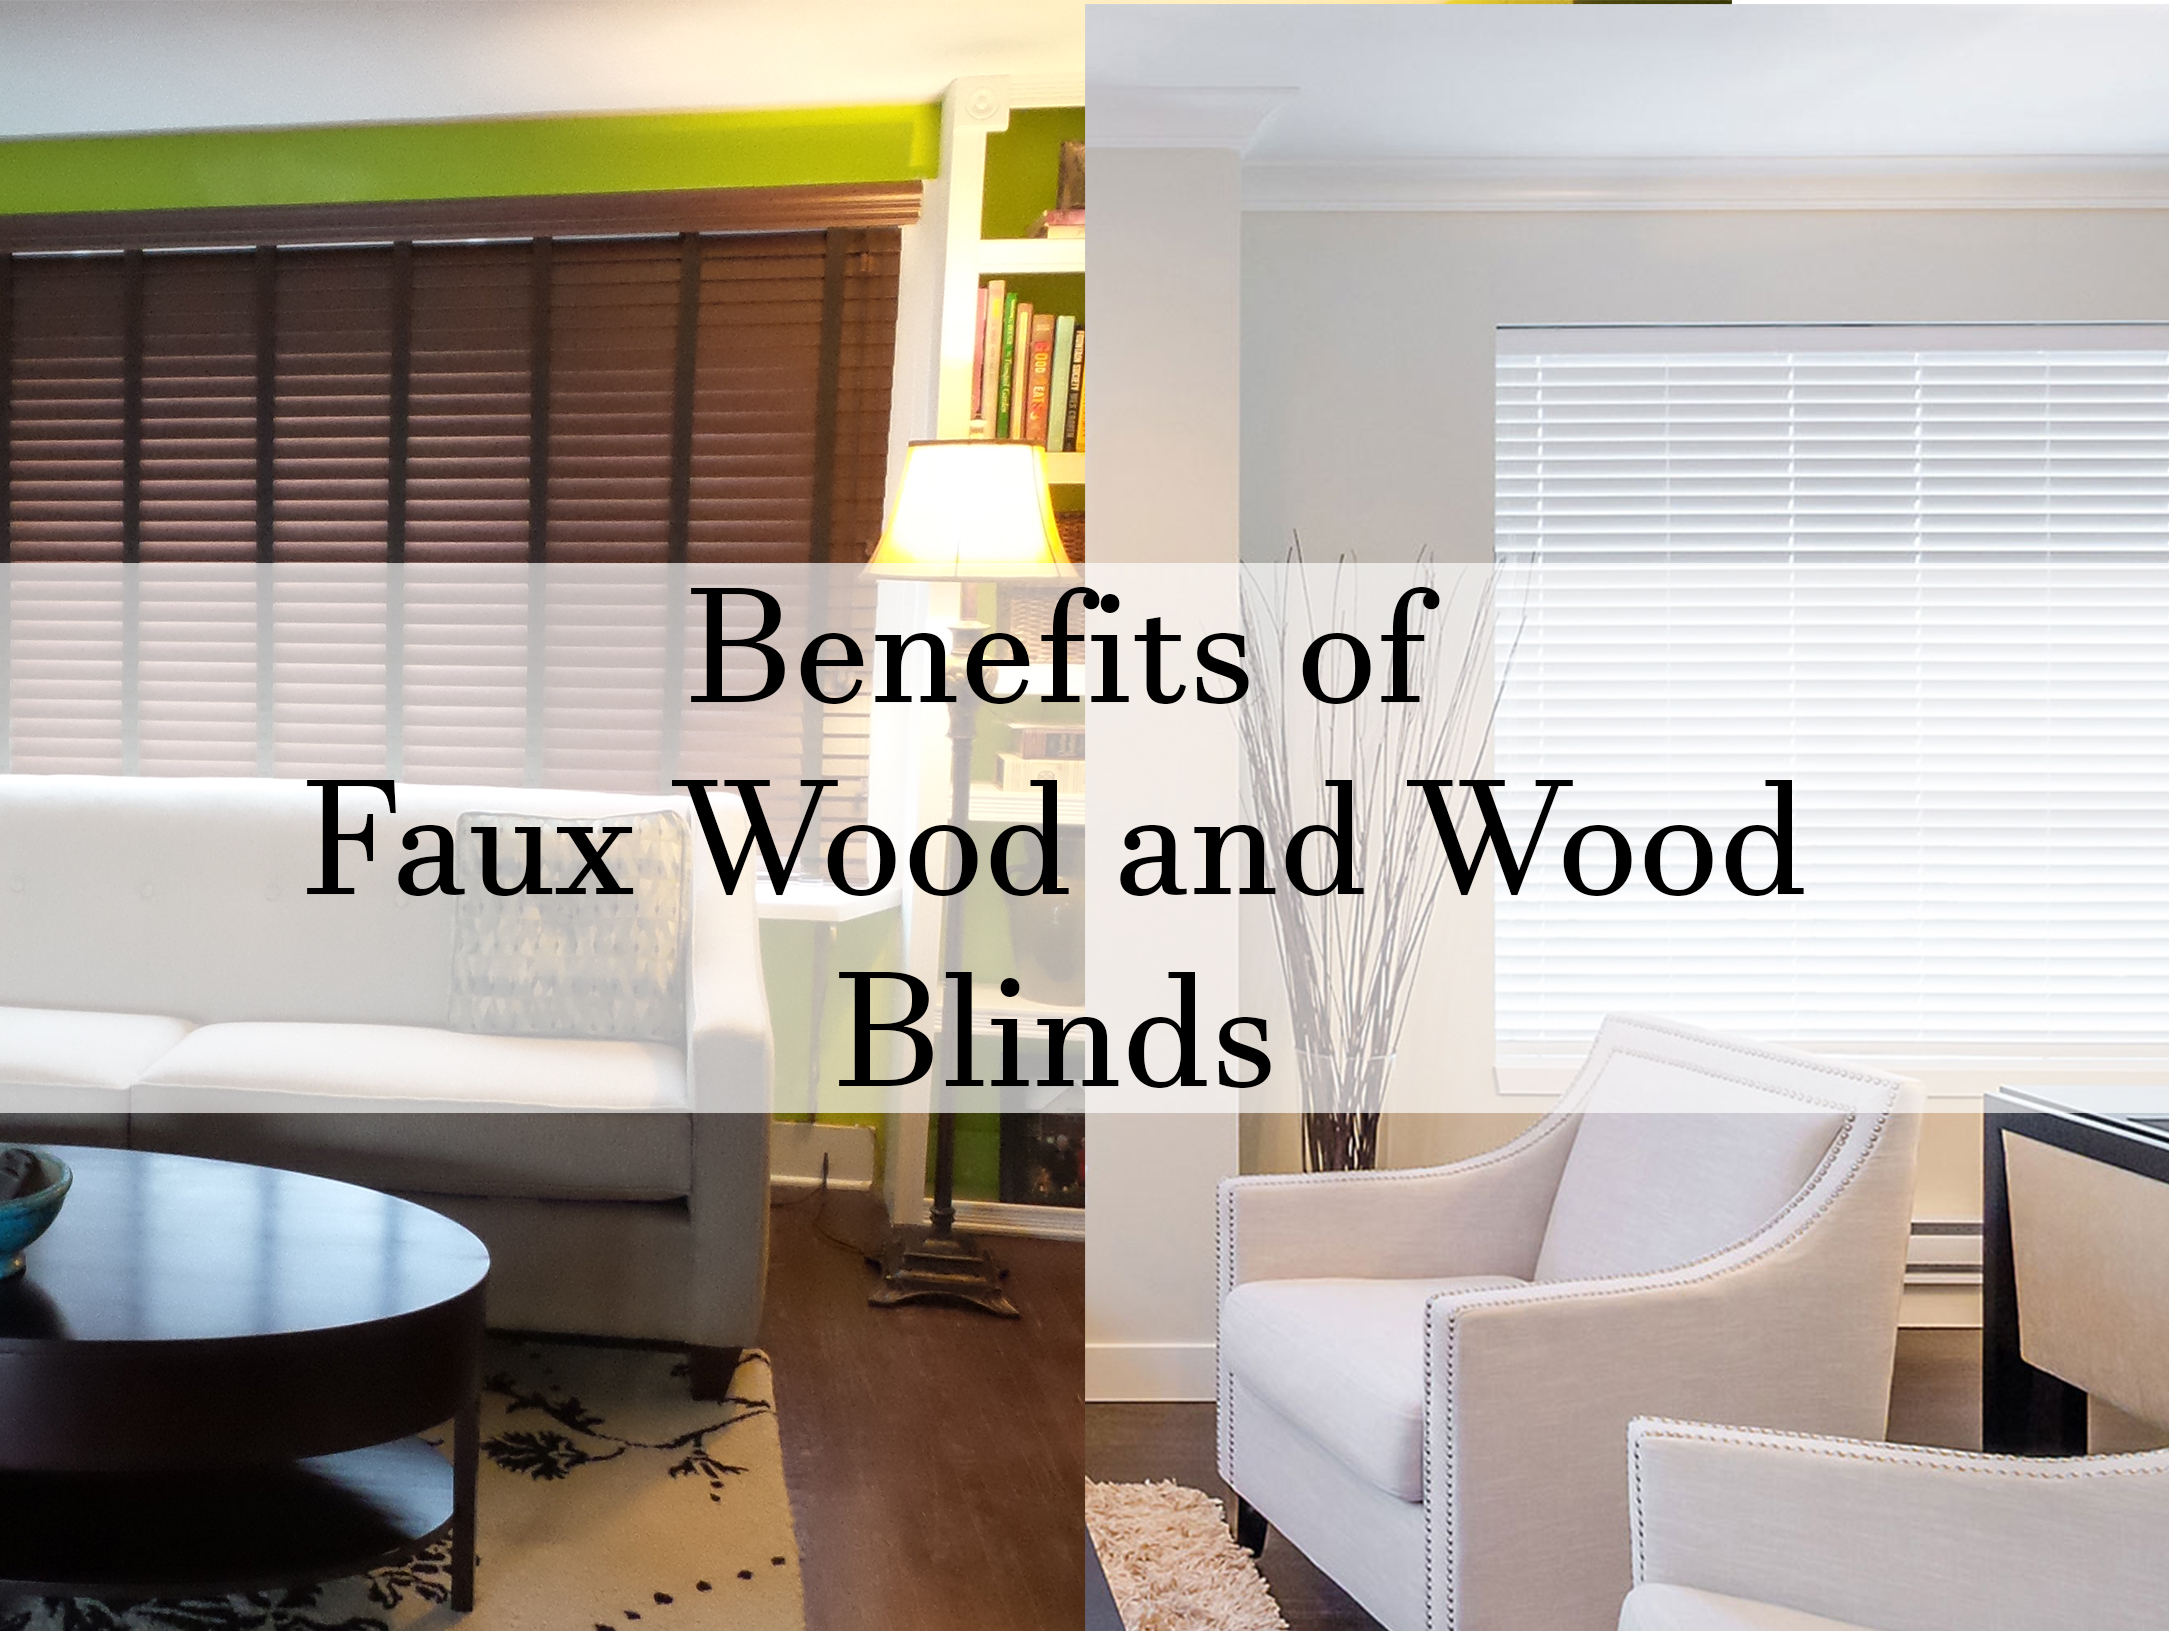 Benefits of Faux Wood and Wood Blinds